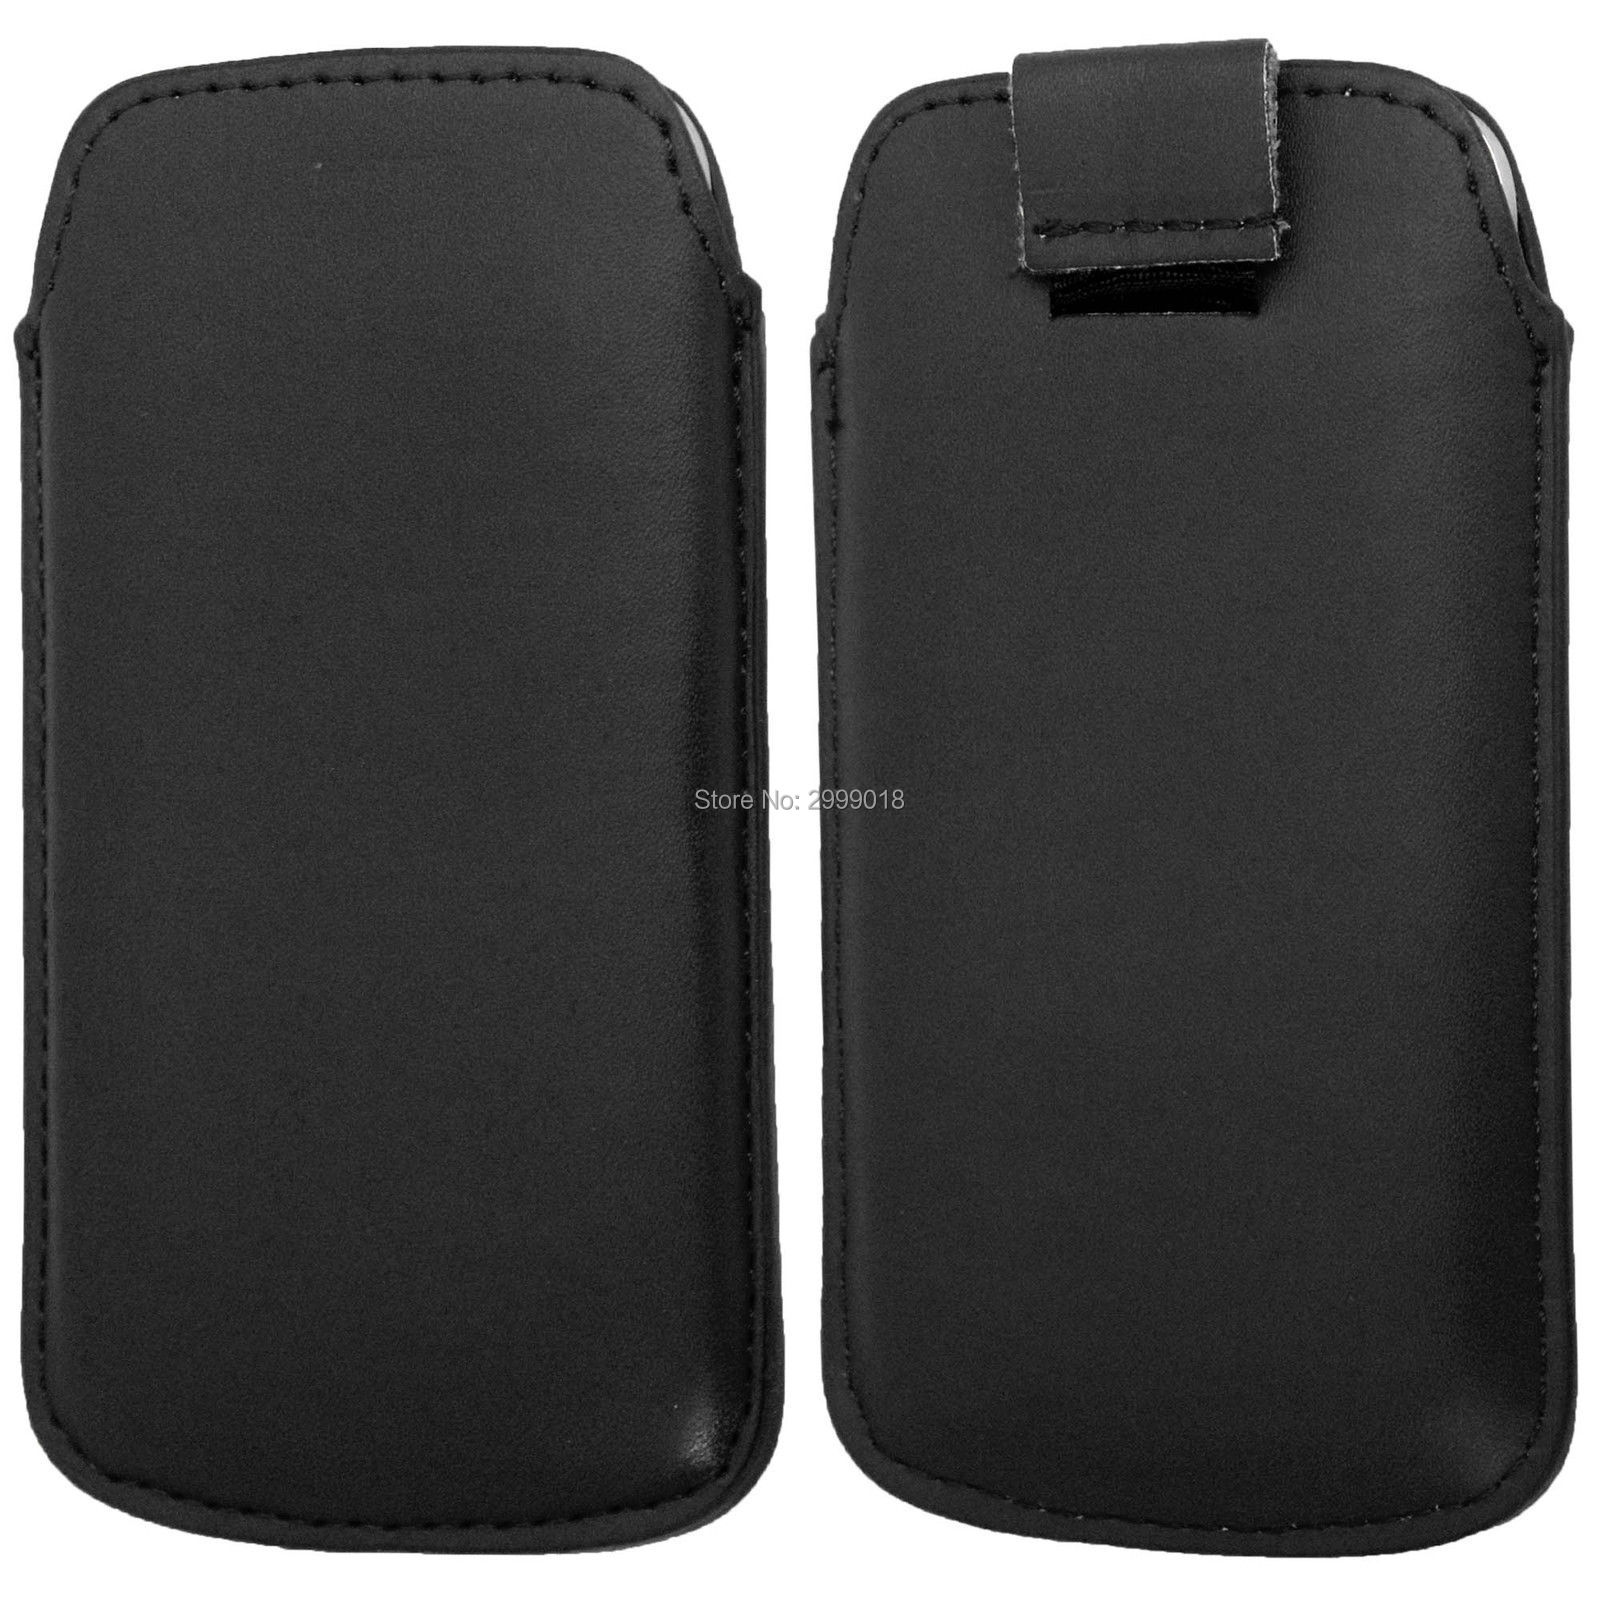 For <font><b>Nokia</b></font> E72 515 301 <font><b>3310</b></font> Pull Tab PU Leather Pouch Bags Phone <font><b>Case</b></font> For <font><b>Nokia</b></font> E72 515 301 <font><b>3310</b></font> 13 Cover image